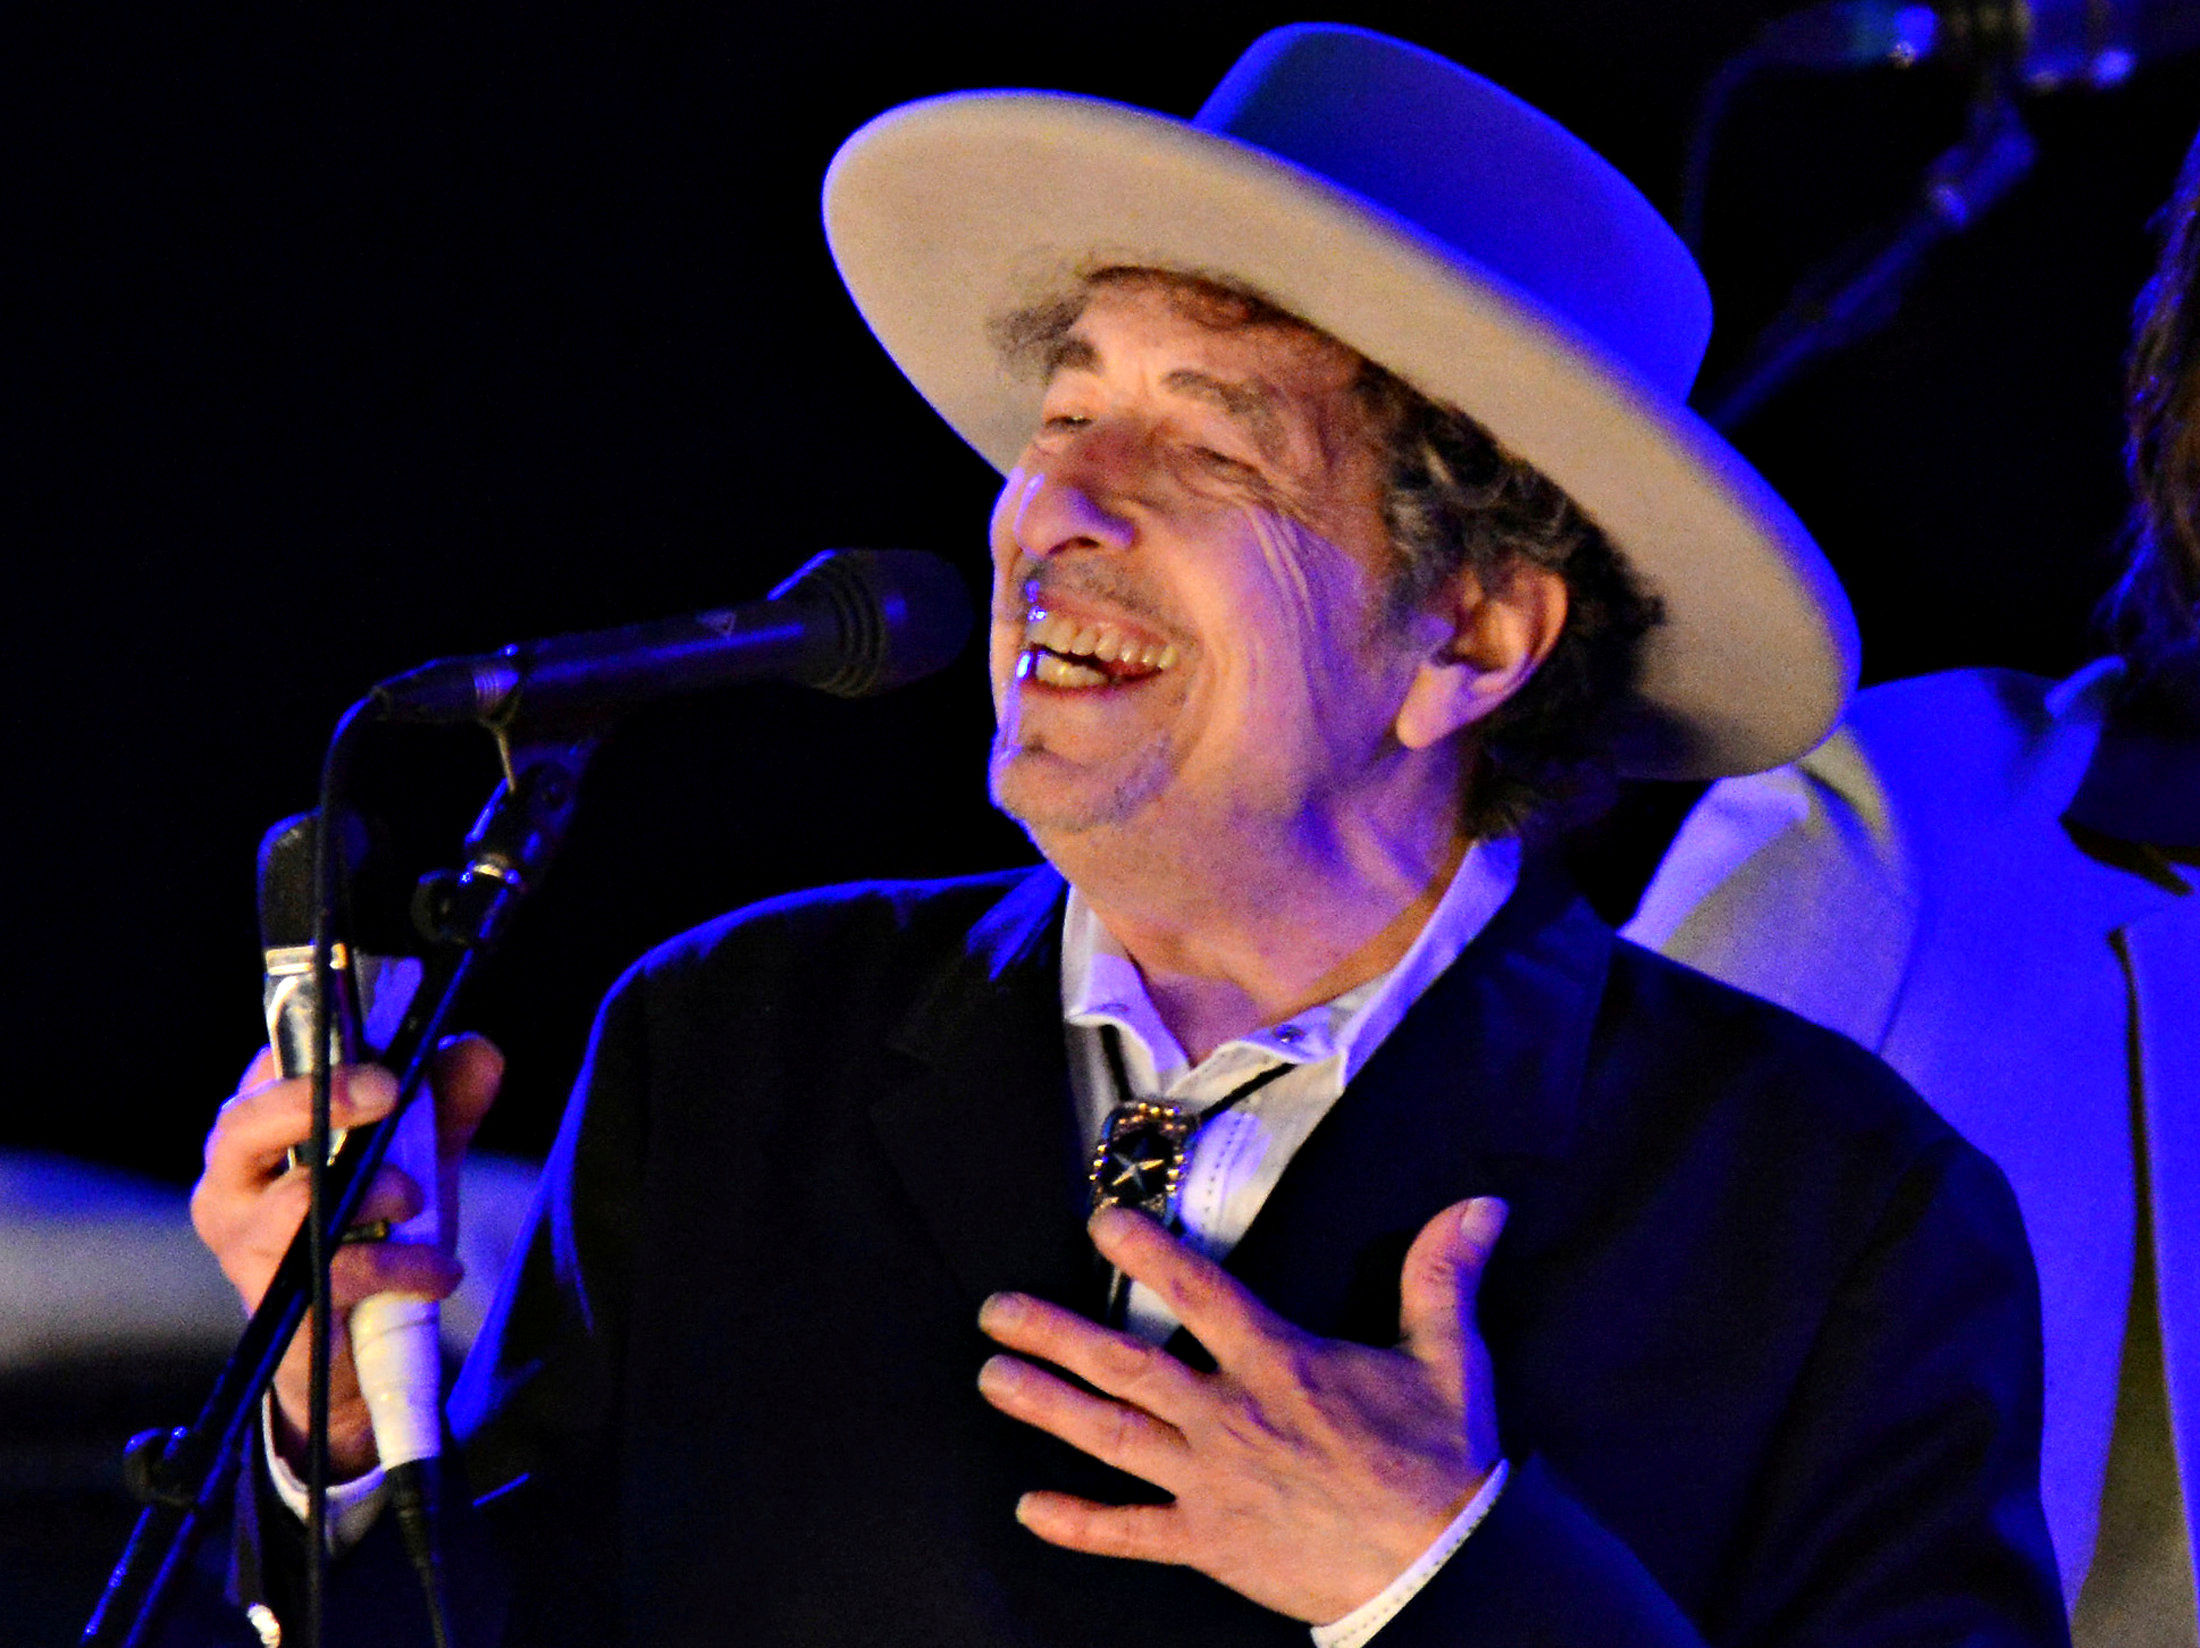 U.S. musician Bob Dylan performs during on day 2 of The Hop Festival in Paddock Wood, Kent on June 30th 2012. REUTERS/Ki Price/File photo     TPX IMAGES OF THE DAY